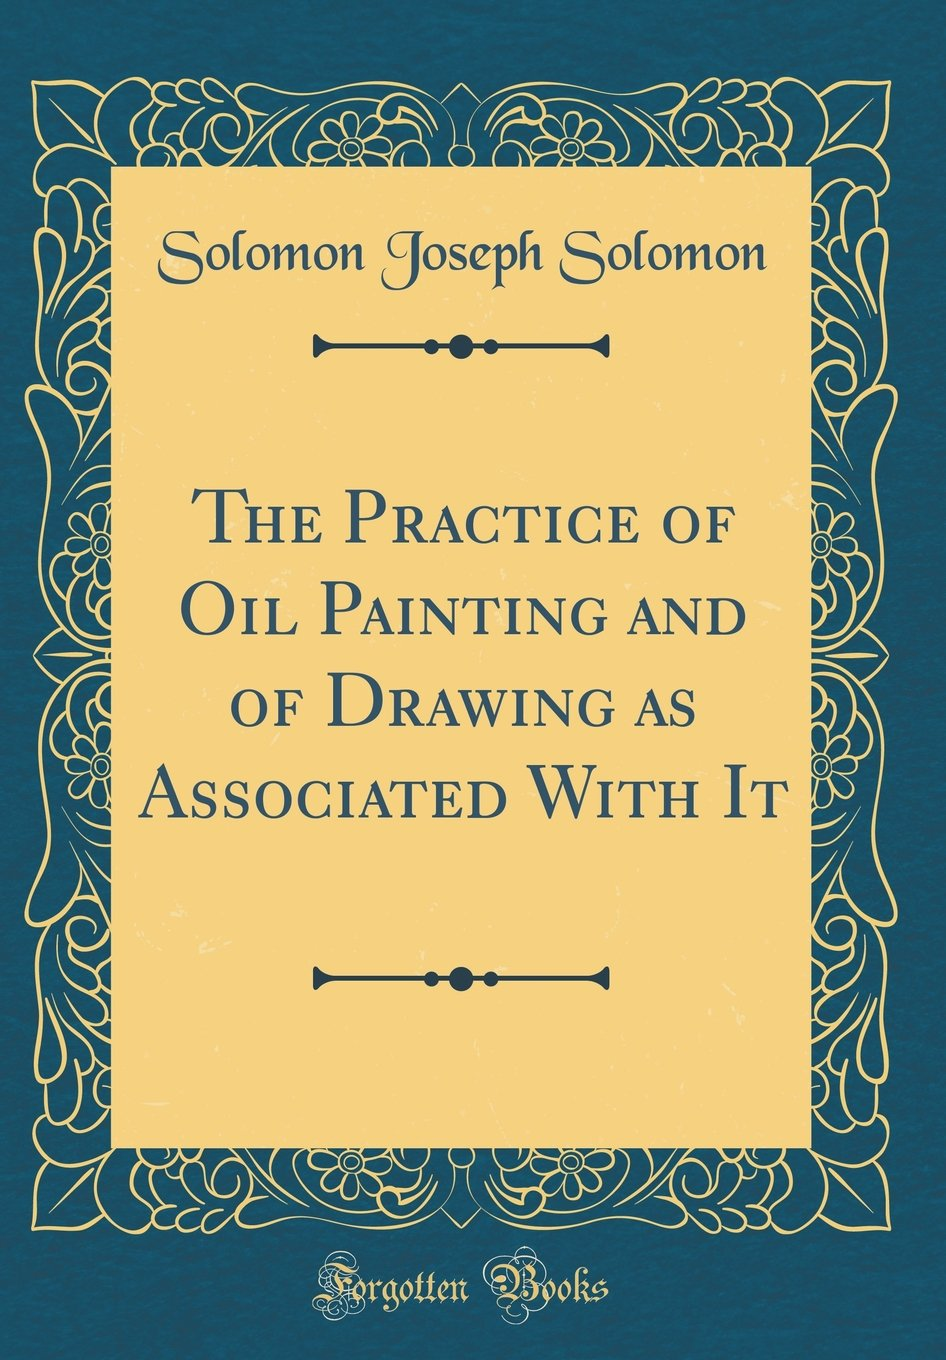 The Practice of Oil Painting and of Drawing as Associated With It (Classic Reprint) PDF